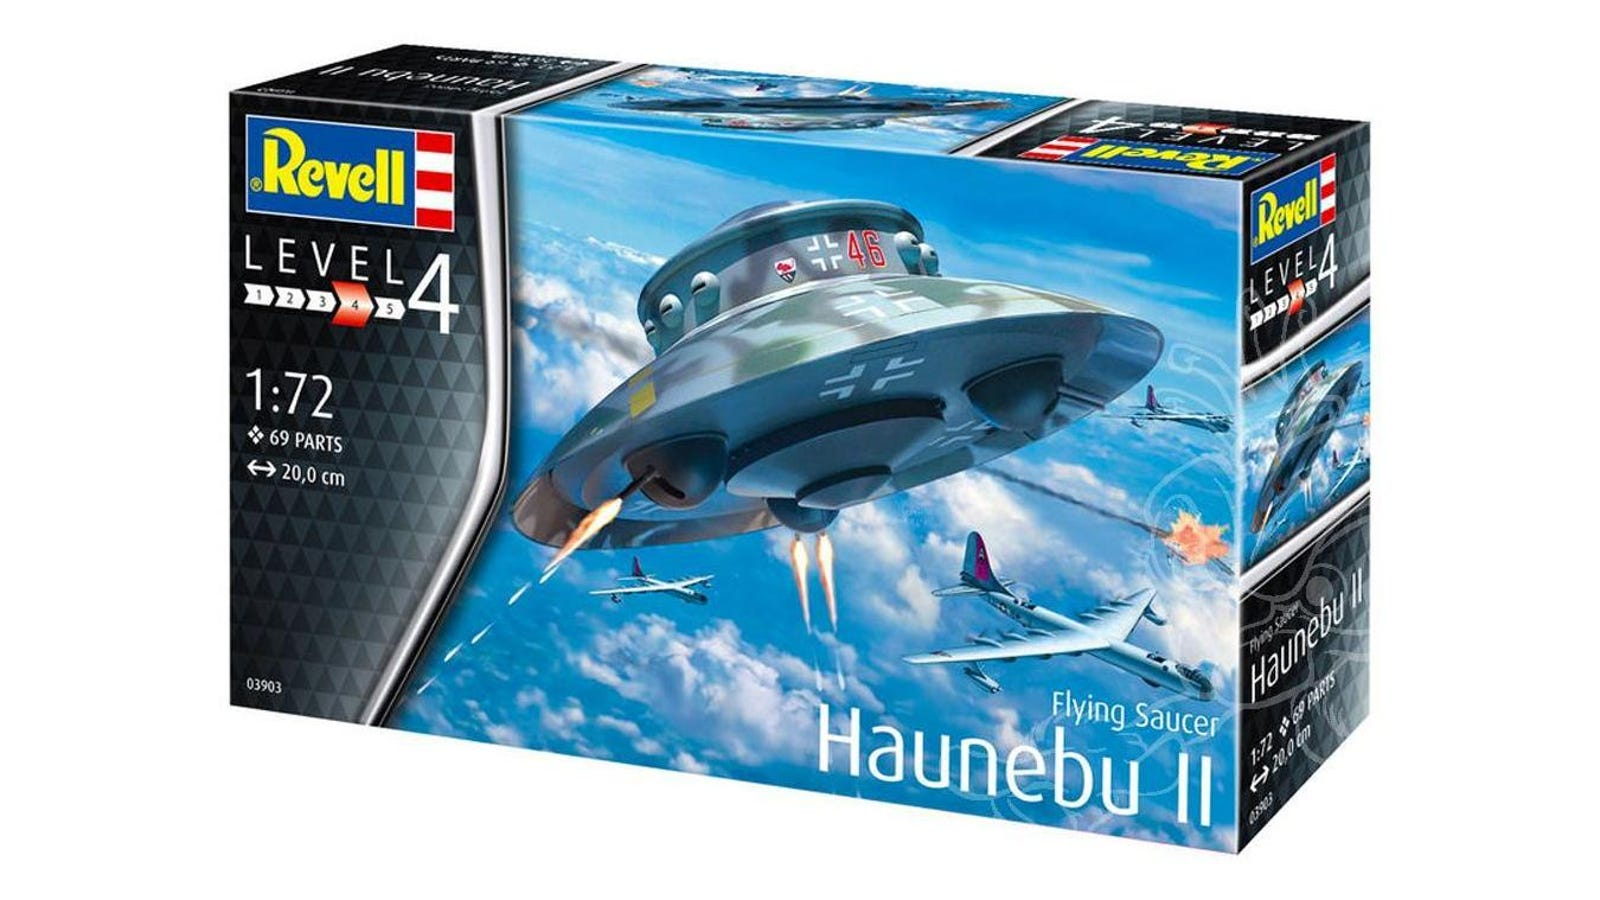 Flying Saucer Toy Recalled For Teaching Kids That Nazis Achieved Space Travel